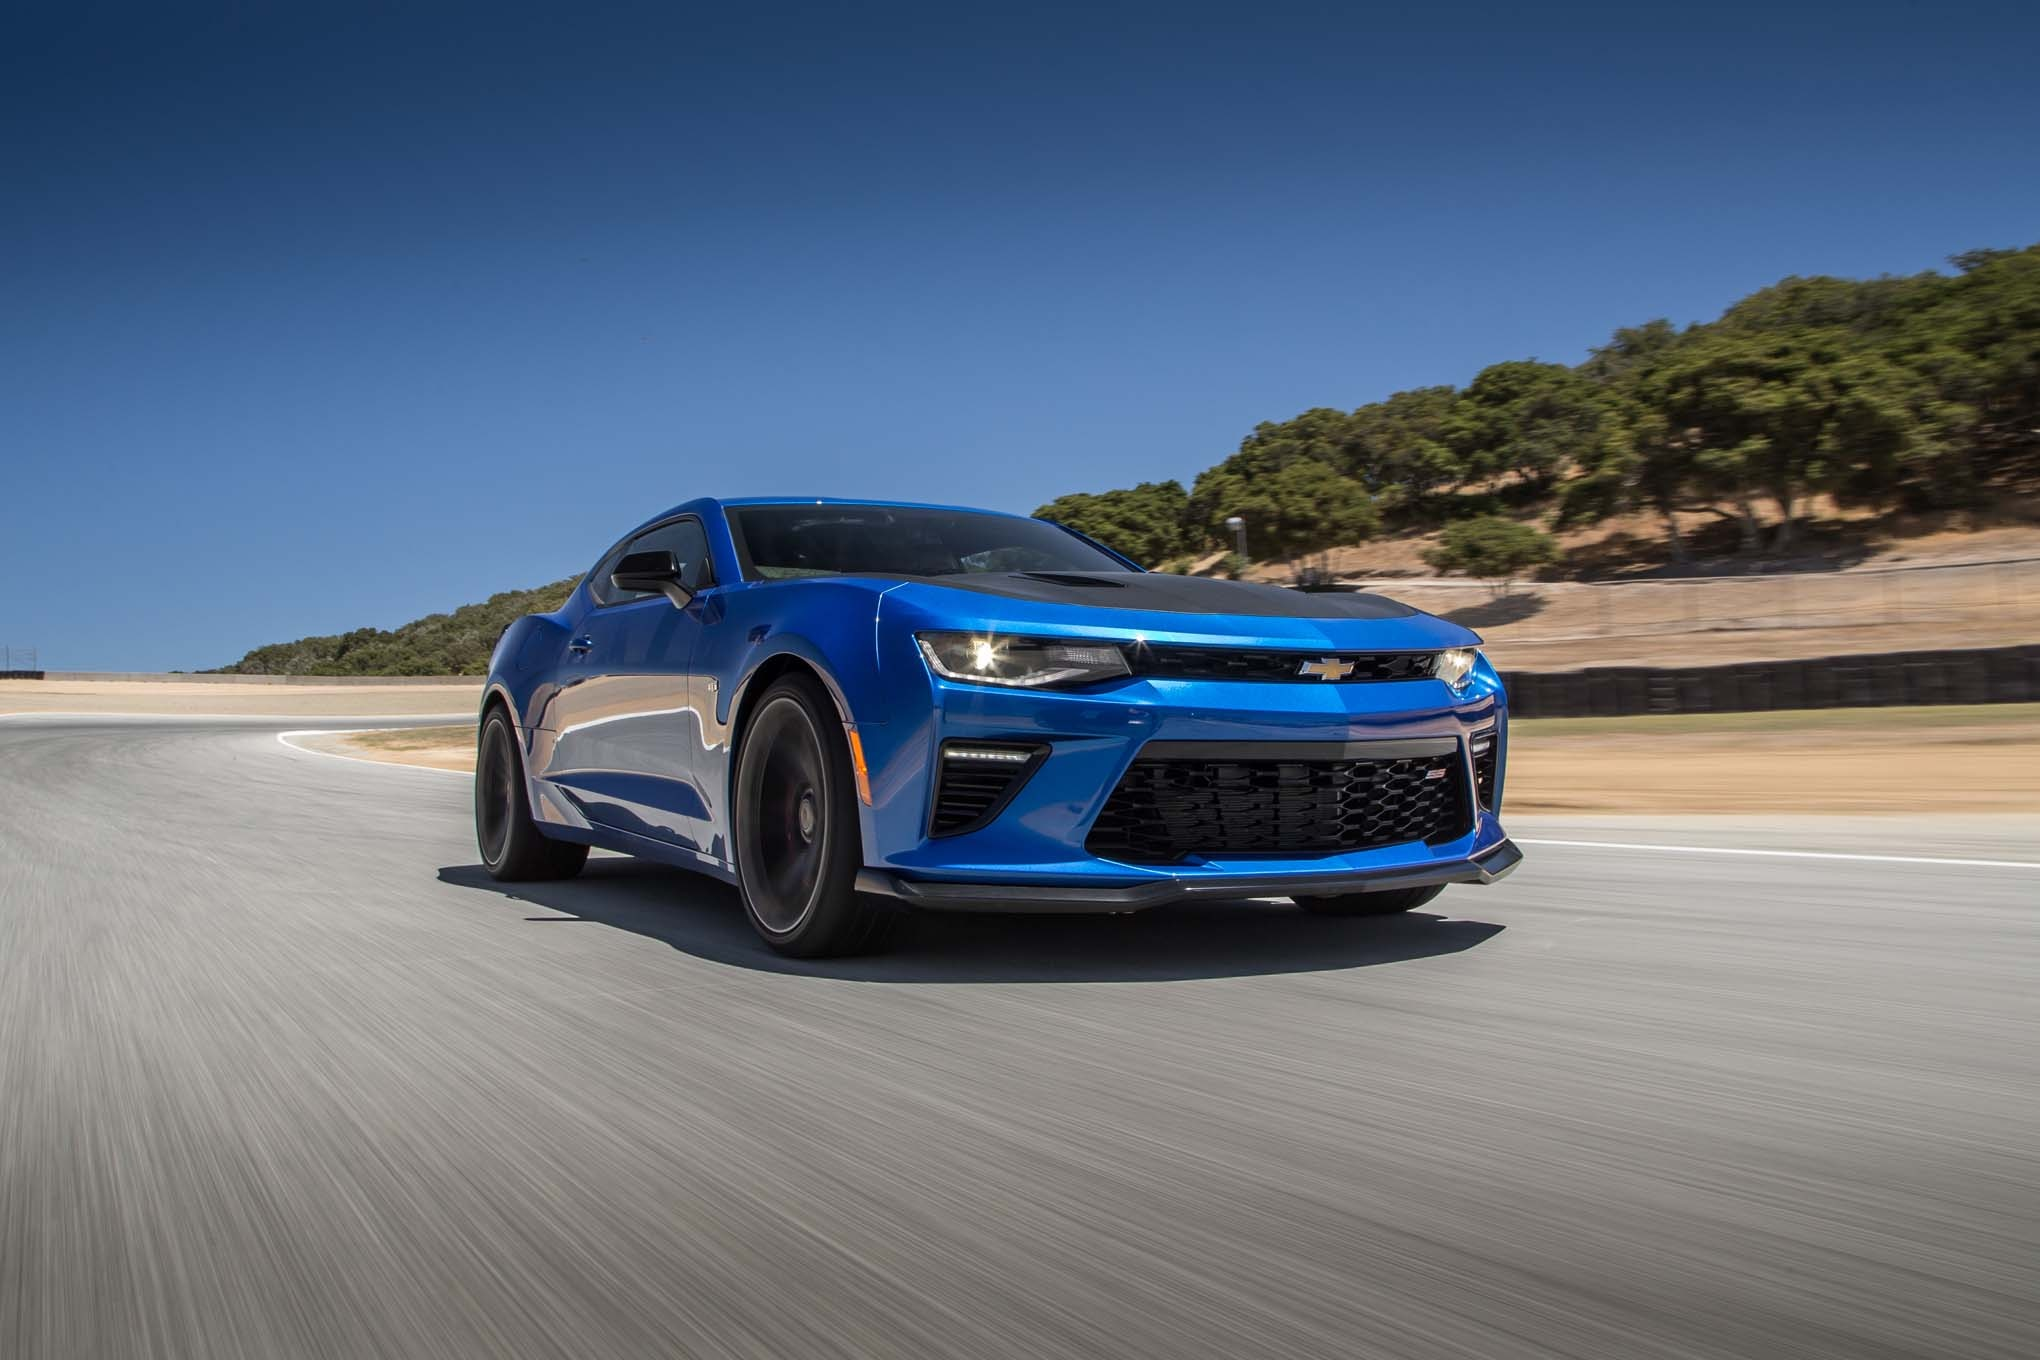 Chevrolet Eyes More Competitive Price Points for Camaro   Automobile Magazine